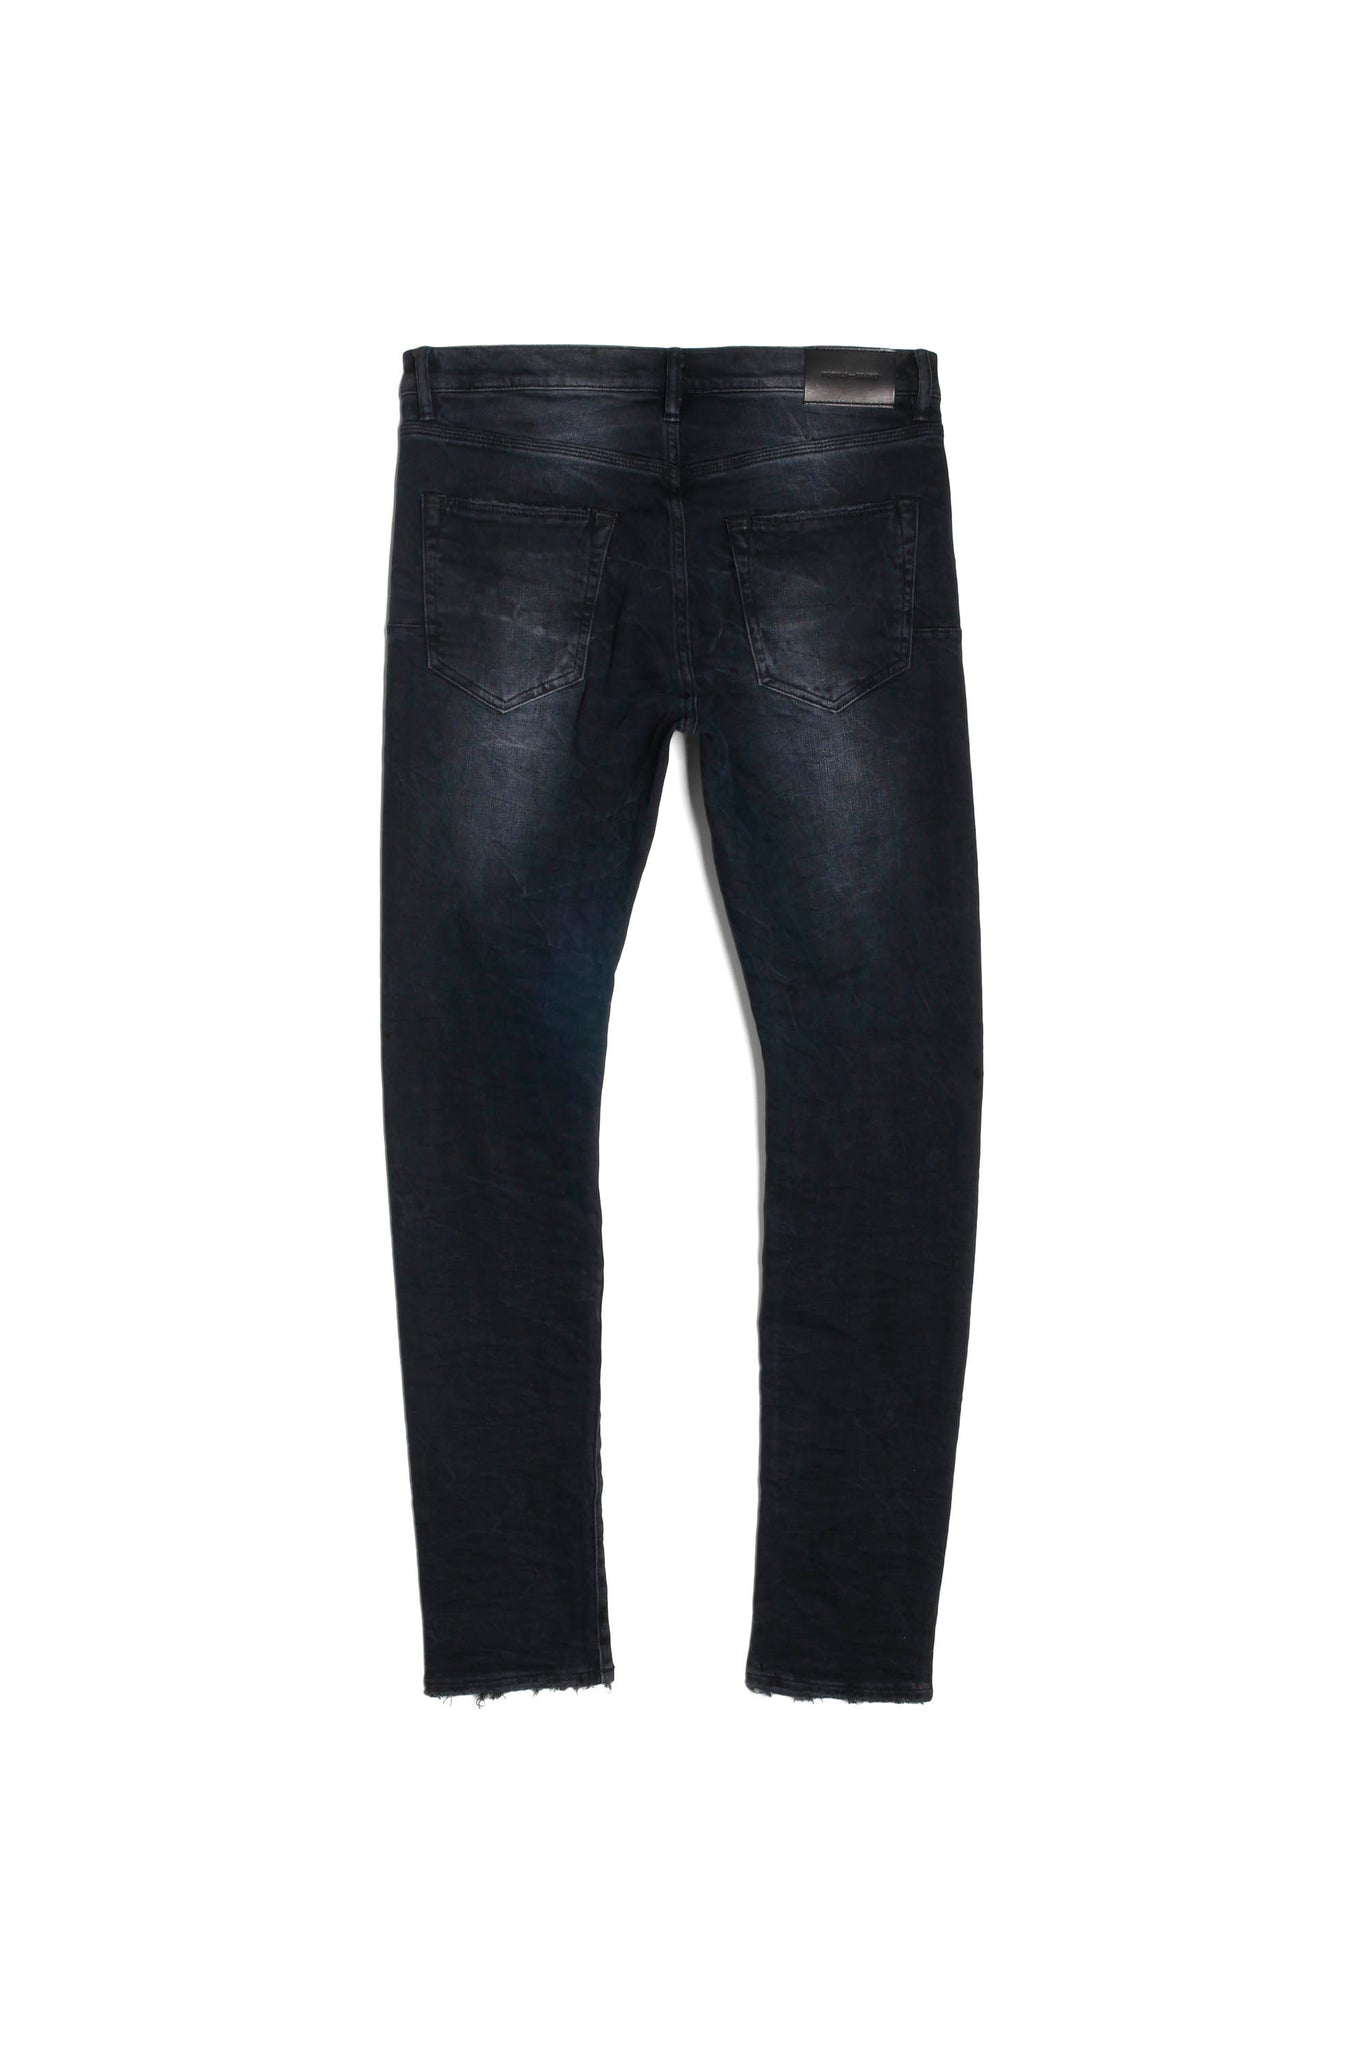 P001 LOW RISE WITH SLIM LEG - Black Wash